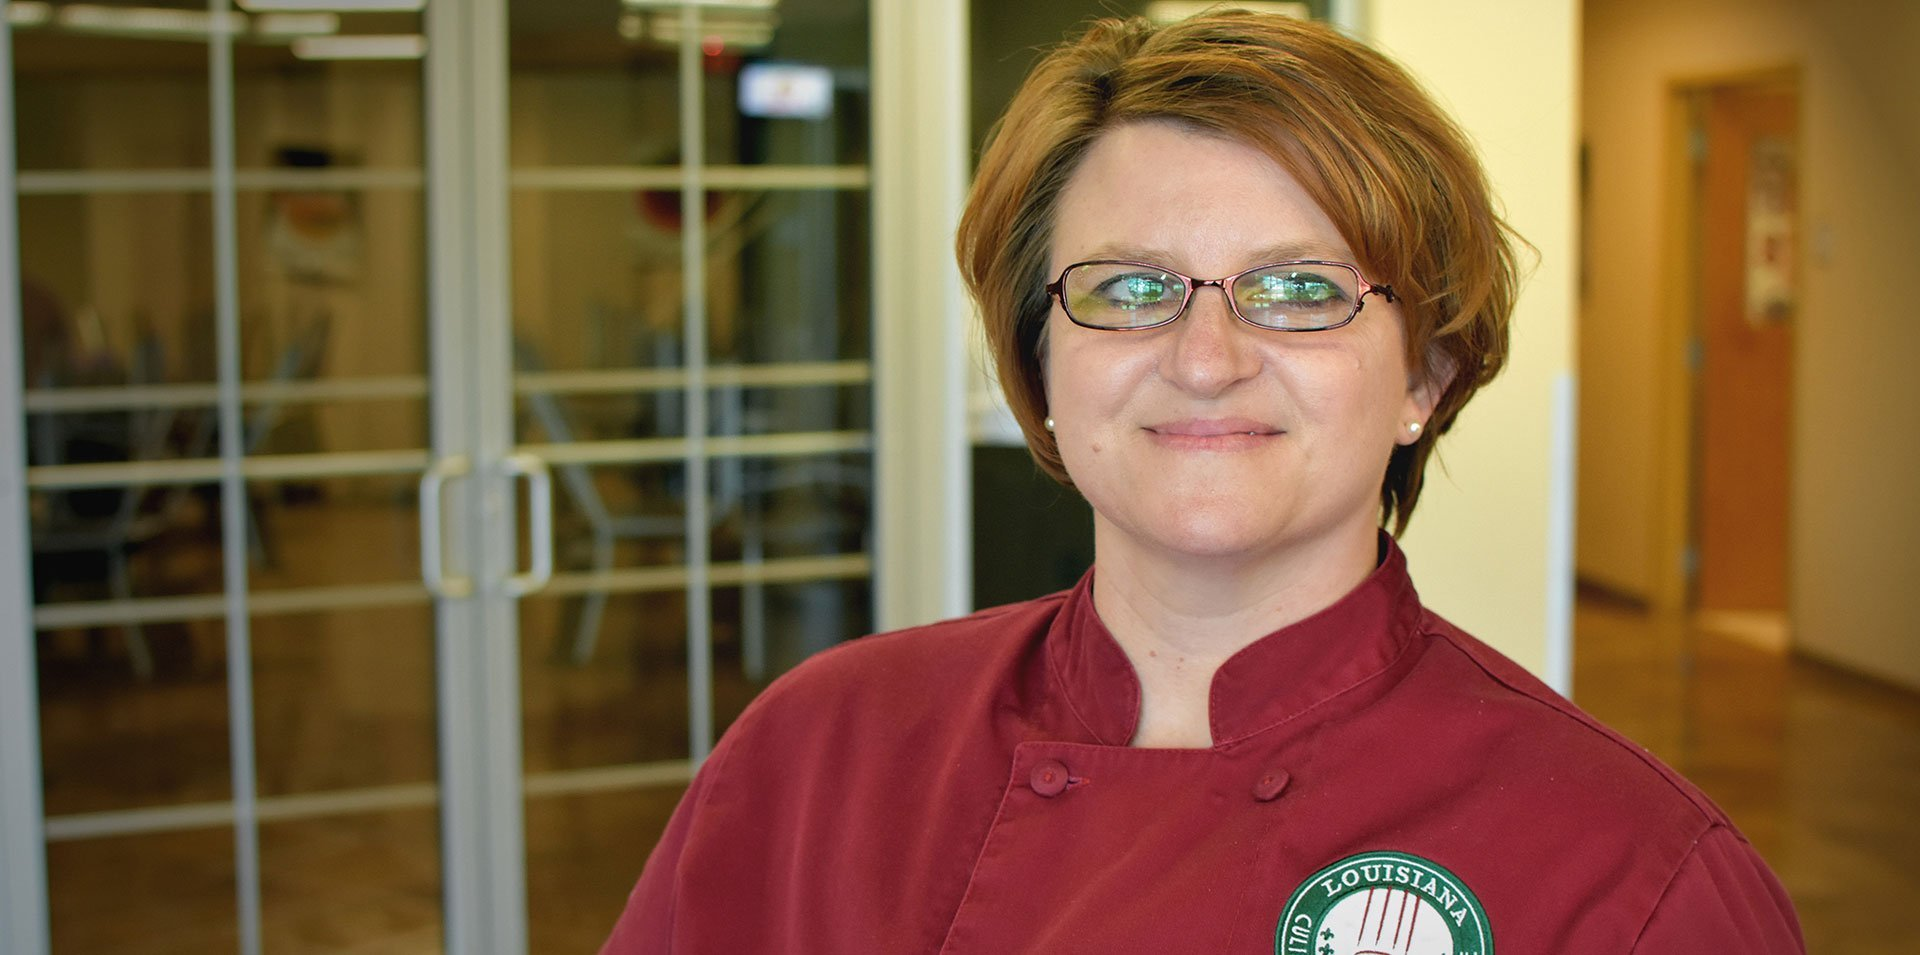 Nicole Biddy Pantry Chef at Louisiana Culinary Institute